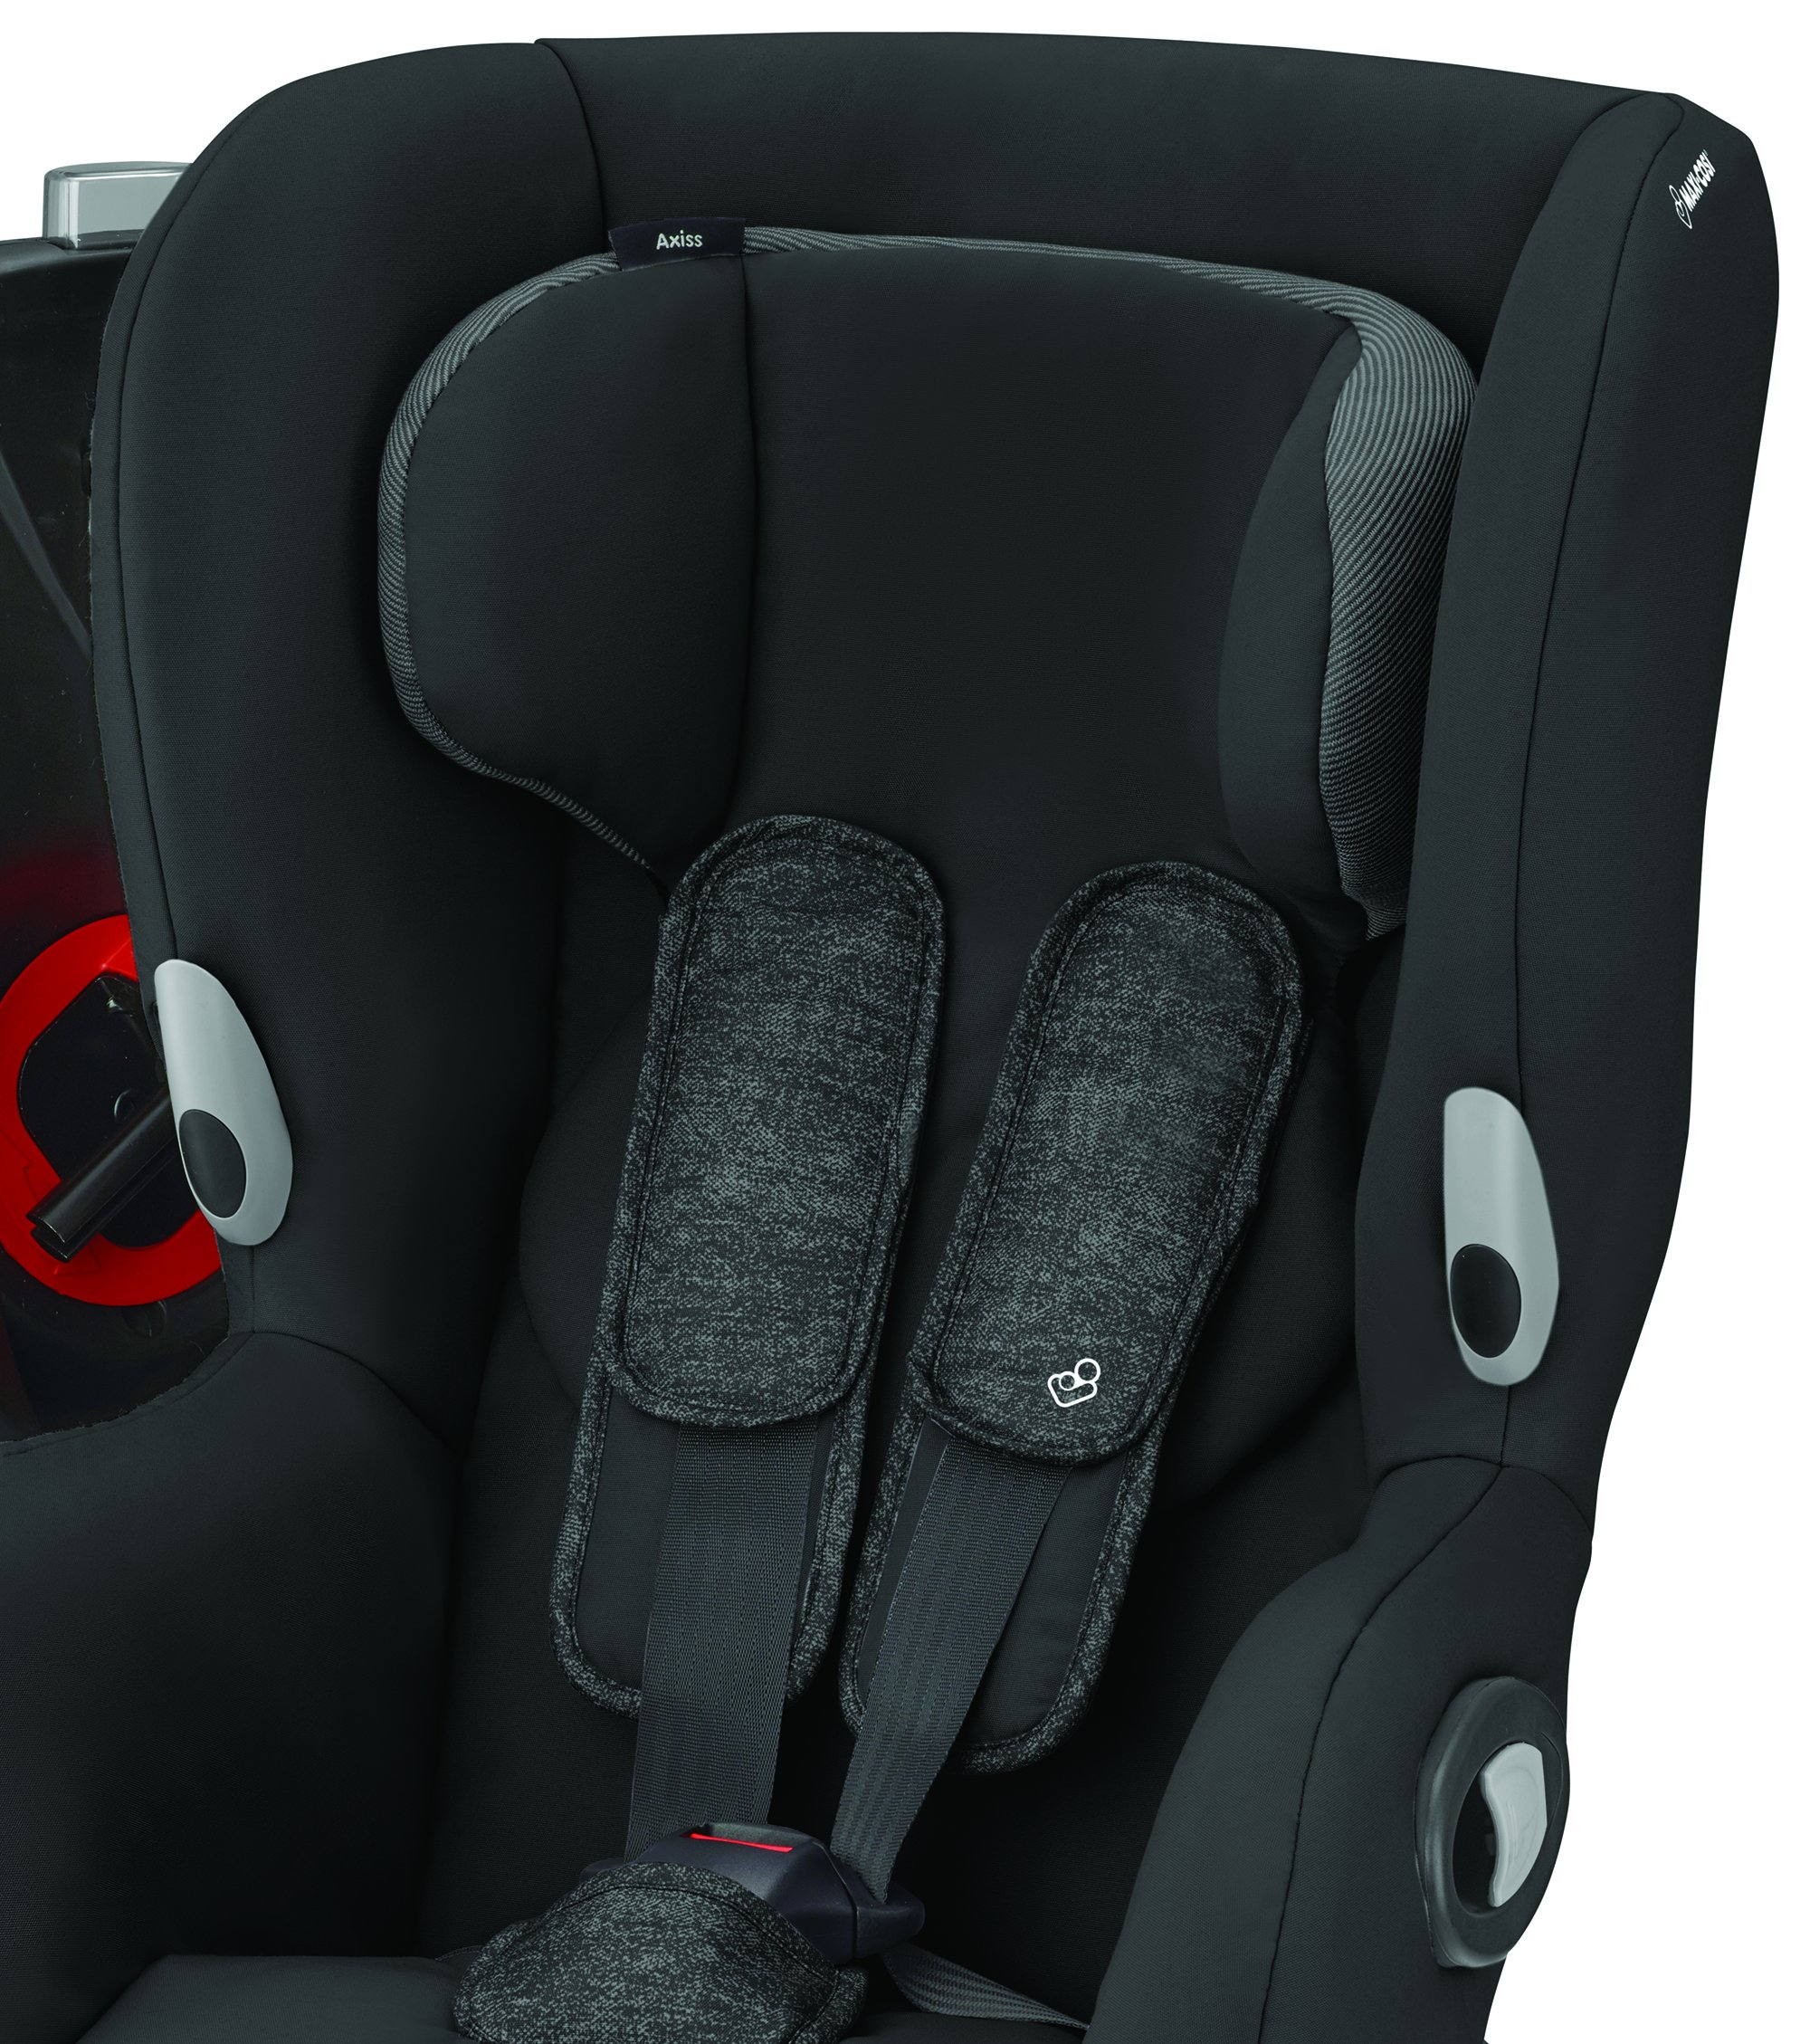 Maxi-Cosi Axiss Toddler Car Seat Group 1, Swivel Car Seat, 9 Months-4 Years, Nomad Black, 9-18 kg Maxi-Cosi Car seat swivels 90° degrees allows for front-on access to get your toddler in and out of the car more easily 8 comfortable recline positions. Machine washable cover at 30° Install using the car's seat belt and the integrated belt tensioner ensures a solid fit 6